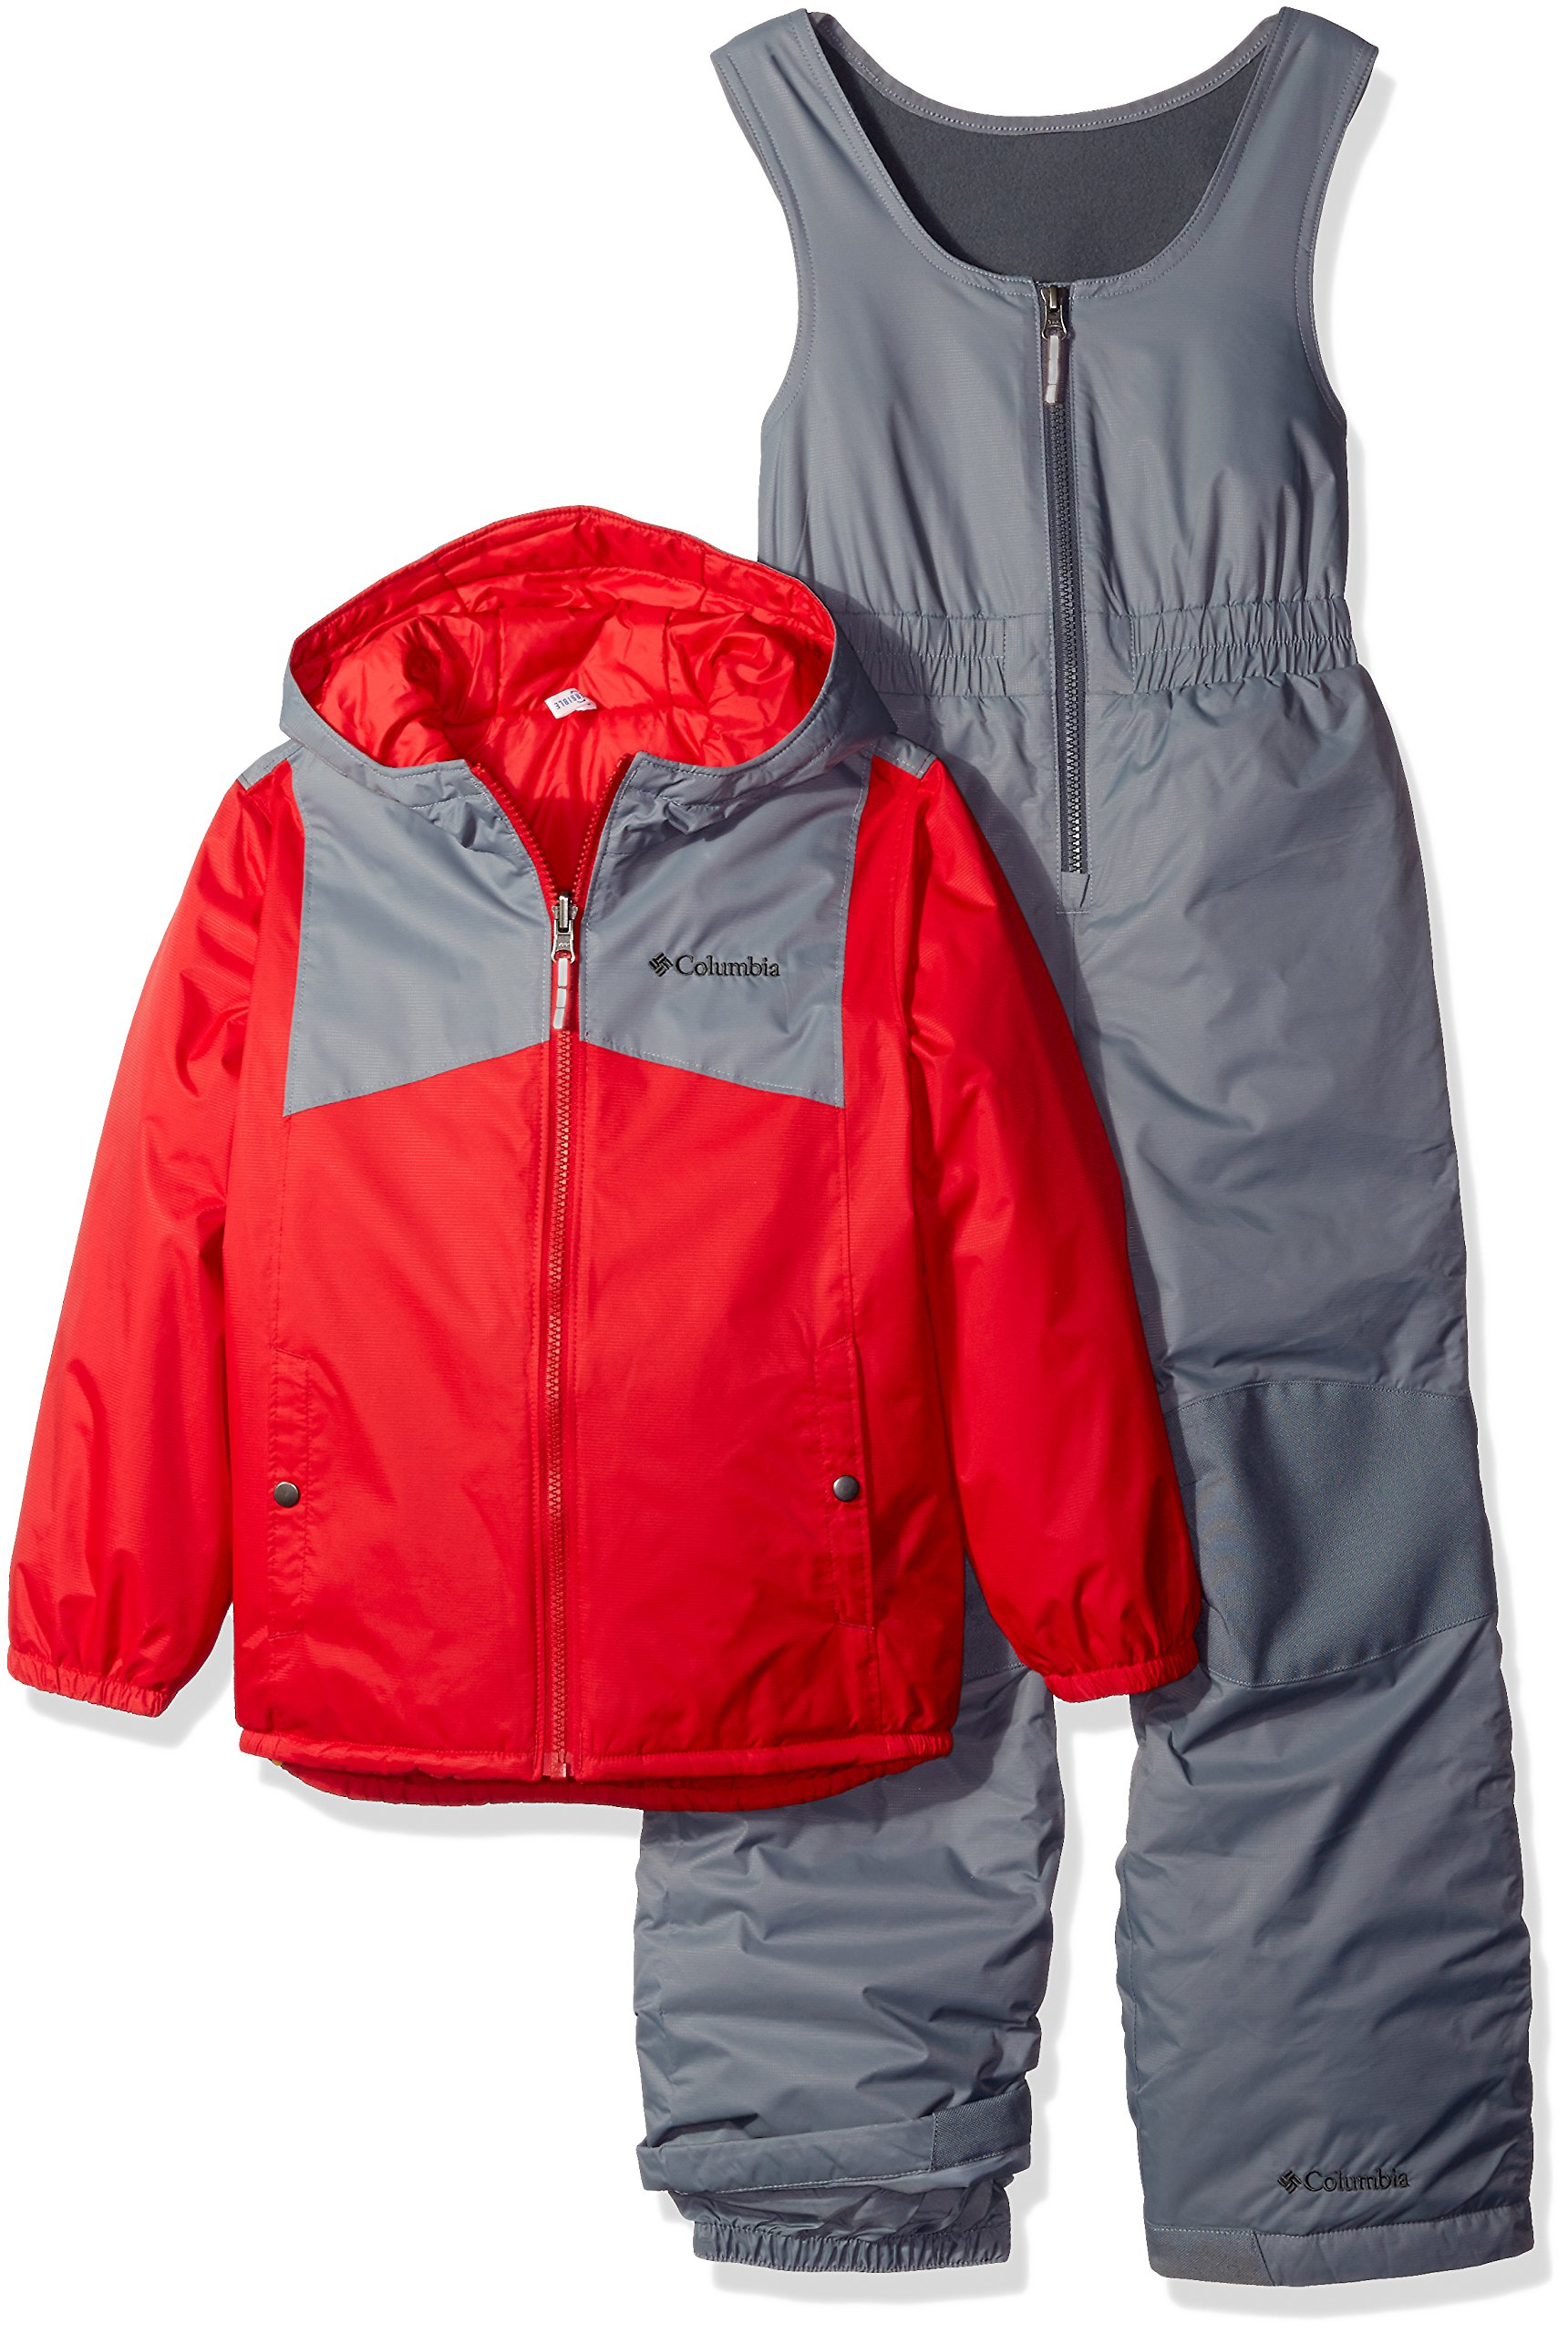 Columbia Little Boys' Toddler Double Flake Set, Mountain Red, 2T by Columbia